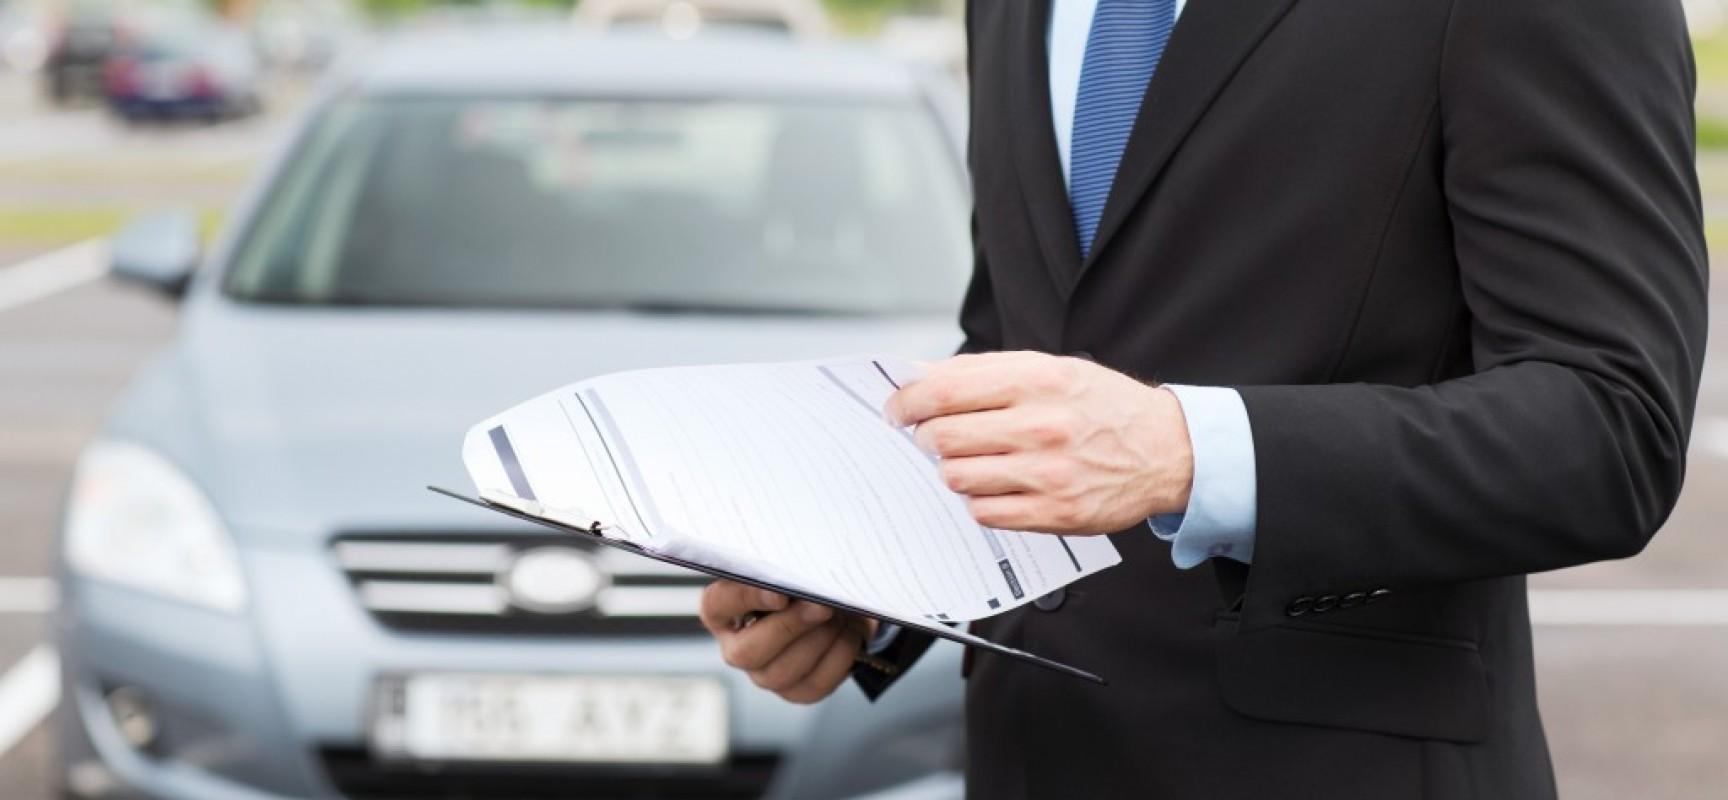 Importance of Insurance in purchase or sale of used cars